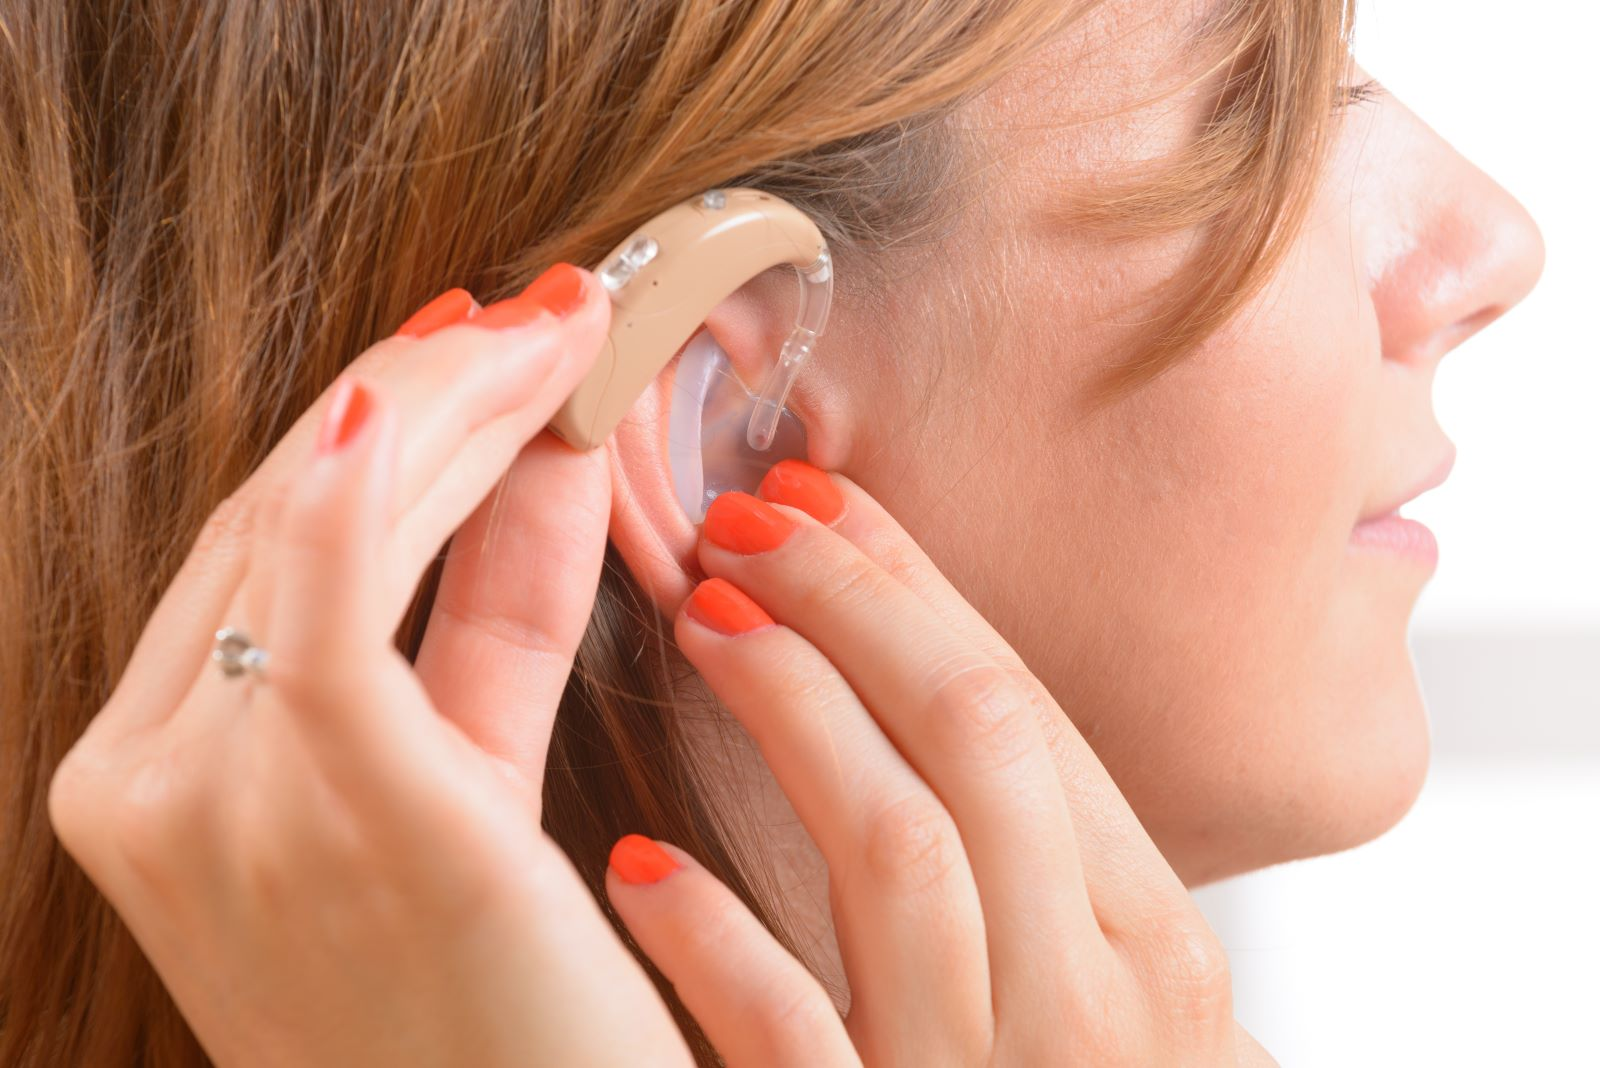 Stock image of a woman putting on a hearing aid